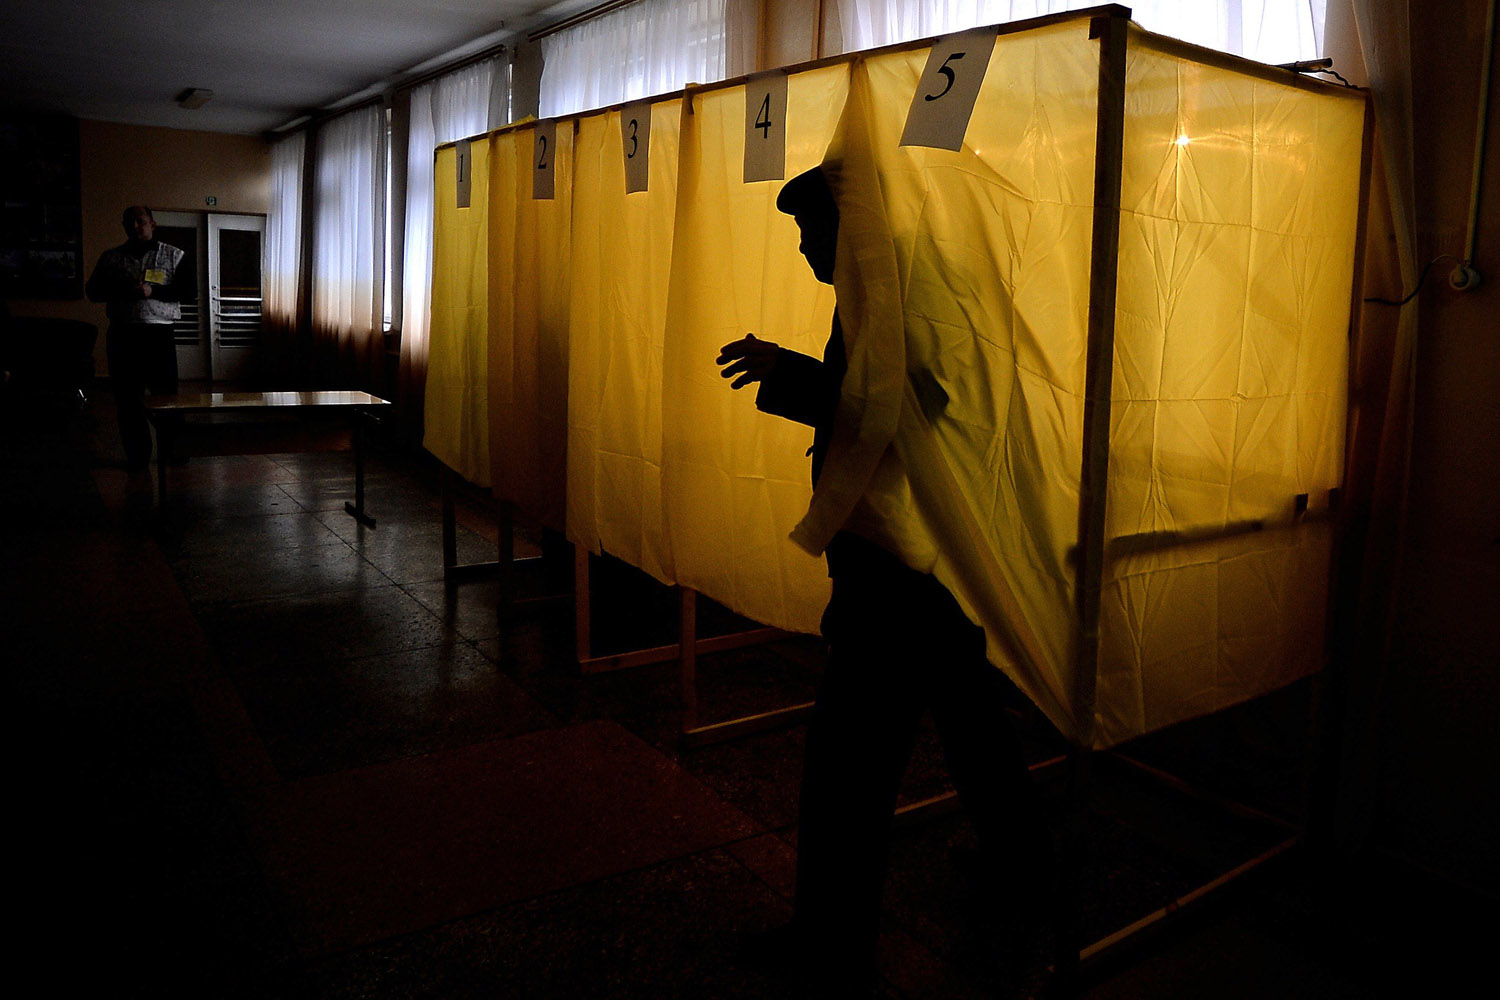 Mar. 16, 2014. A man exits a voting booth after casting his vote in a local school in Simferopol. People in Crimea took to the polls to vote on a referendum on breaking away from Ukraine to join Russia that has precipitated a Cold War-style security crisis on Europe's eastern frontier.